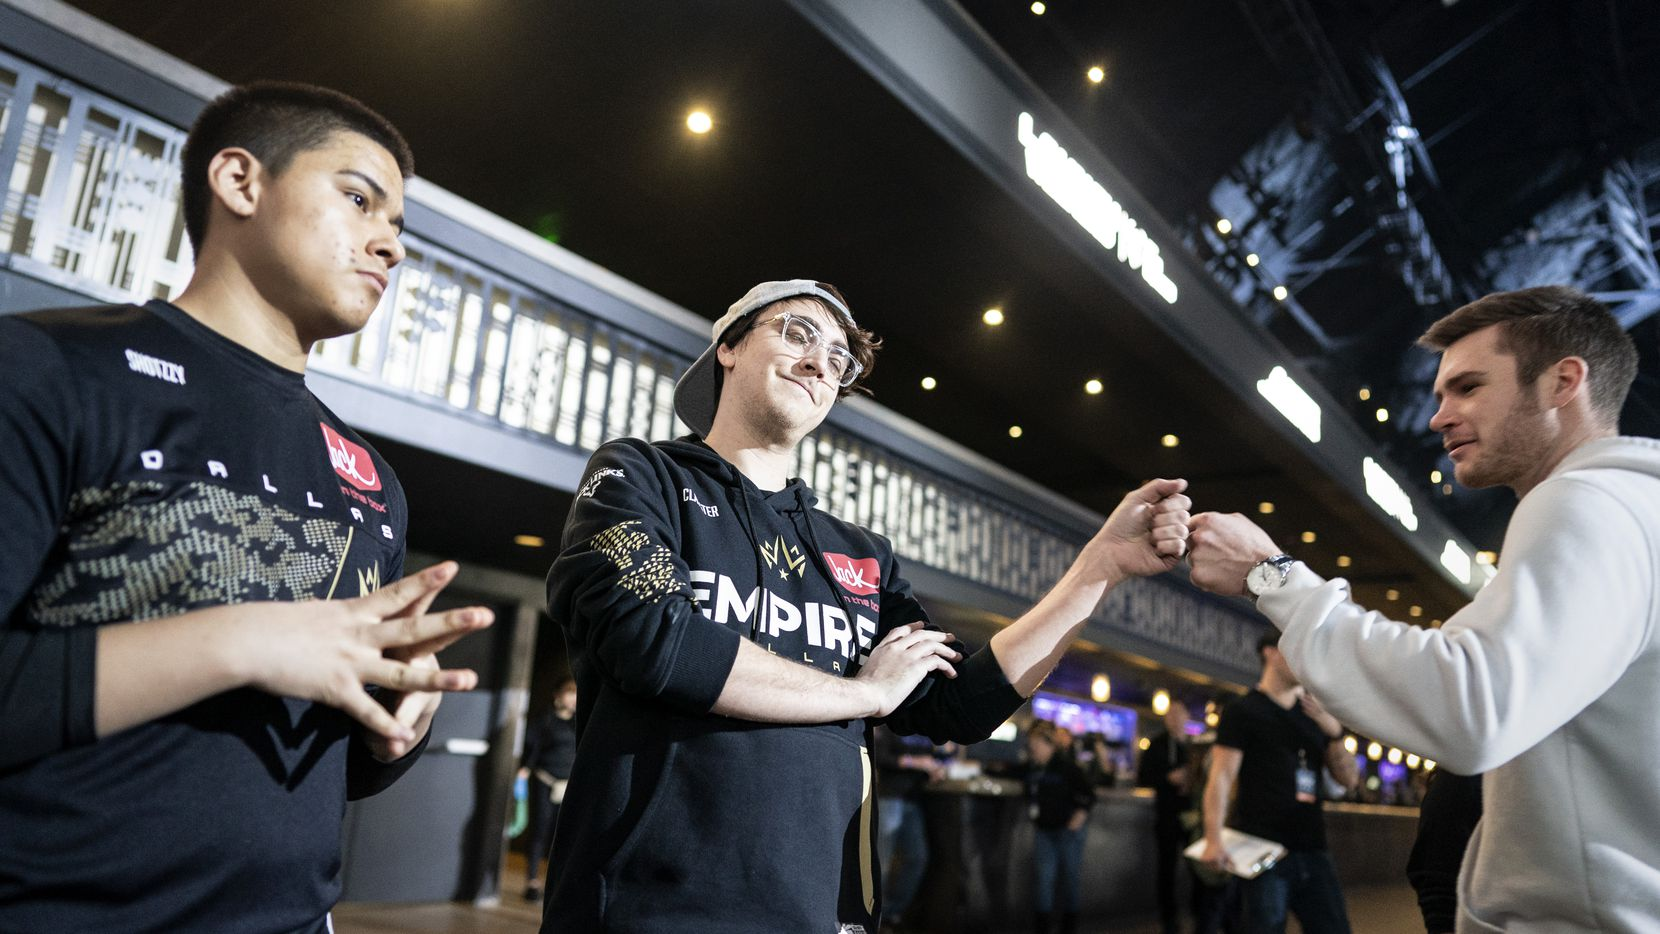 Clayster (James Eubanks), center, greets a fan as he and teammate Shotzzy (Anthony Cuevas-Castro), left, prepare for the Dallas Empire's match against the Chicago Huntsmen in the Call of Duty League Launch Weekend at the Armory in Minneapolis, Minn., January 24, 2020.